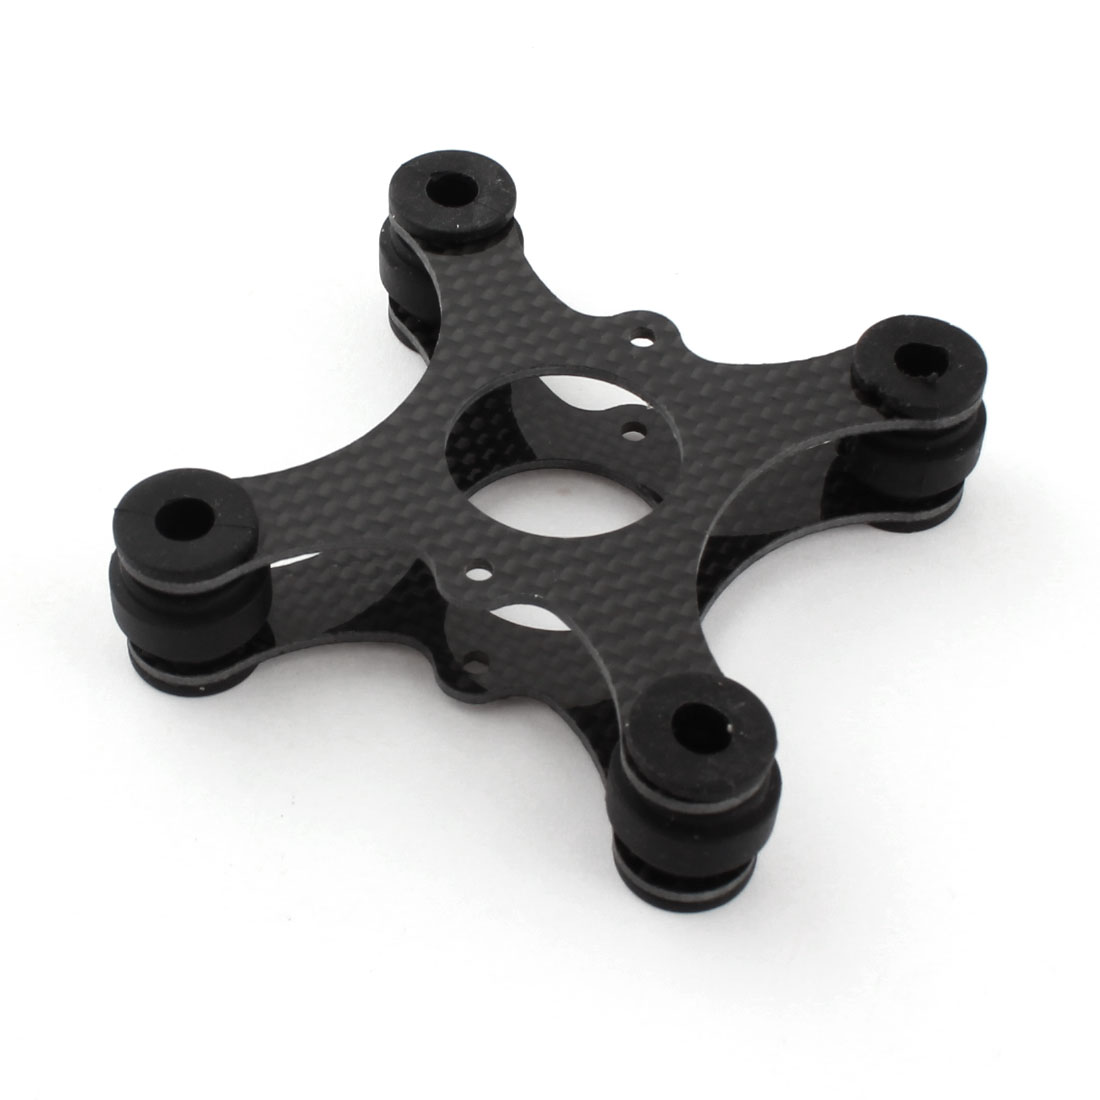 3K Carbon Fiber Anti Vibration Shock Absorber Damper Plate Board Mount for Walkera QR X350 GOPRO RC Quadcopter